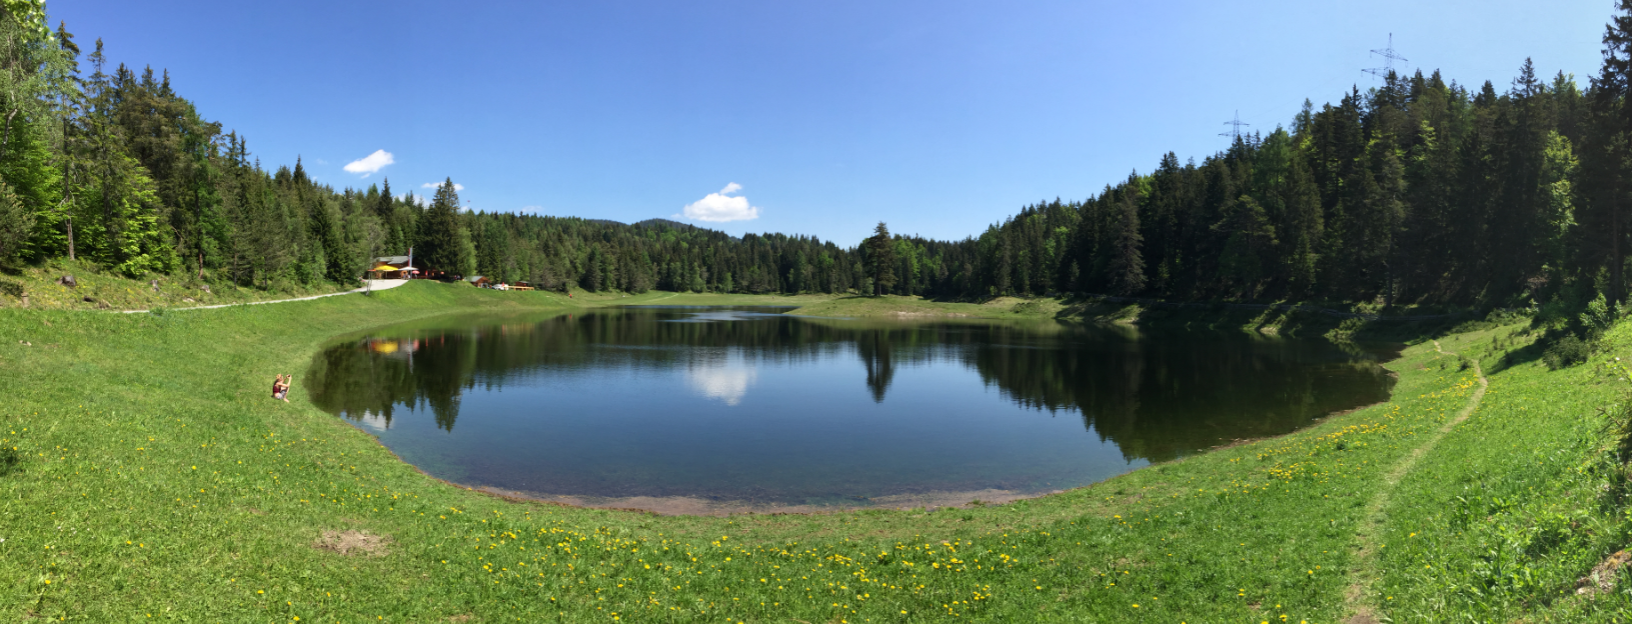 Lottensee